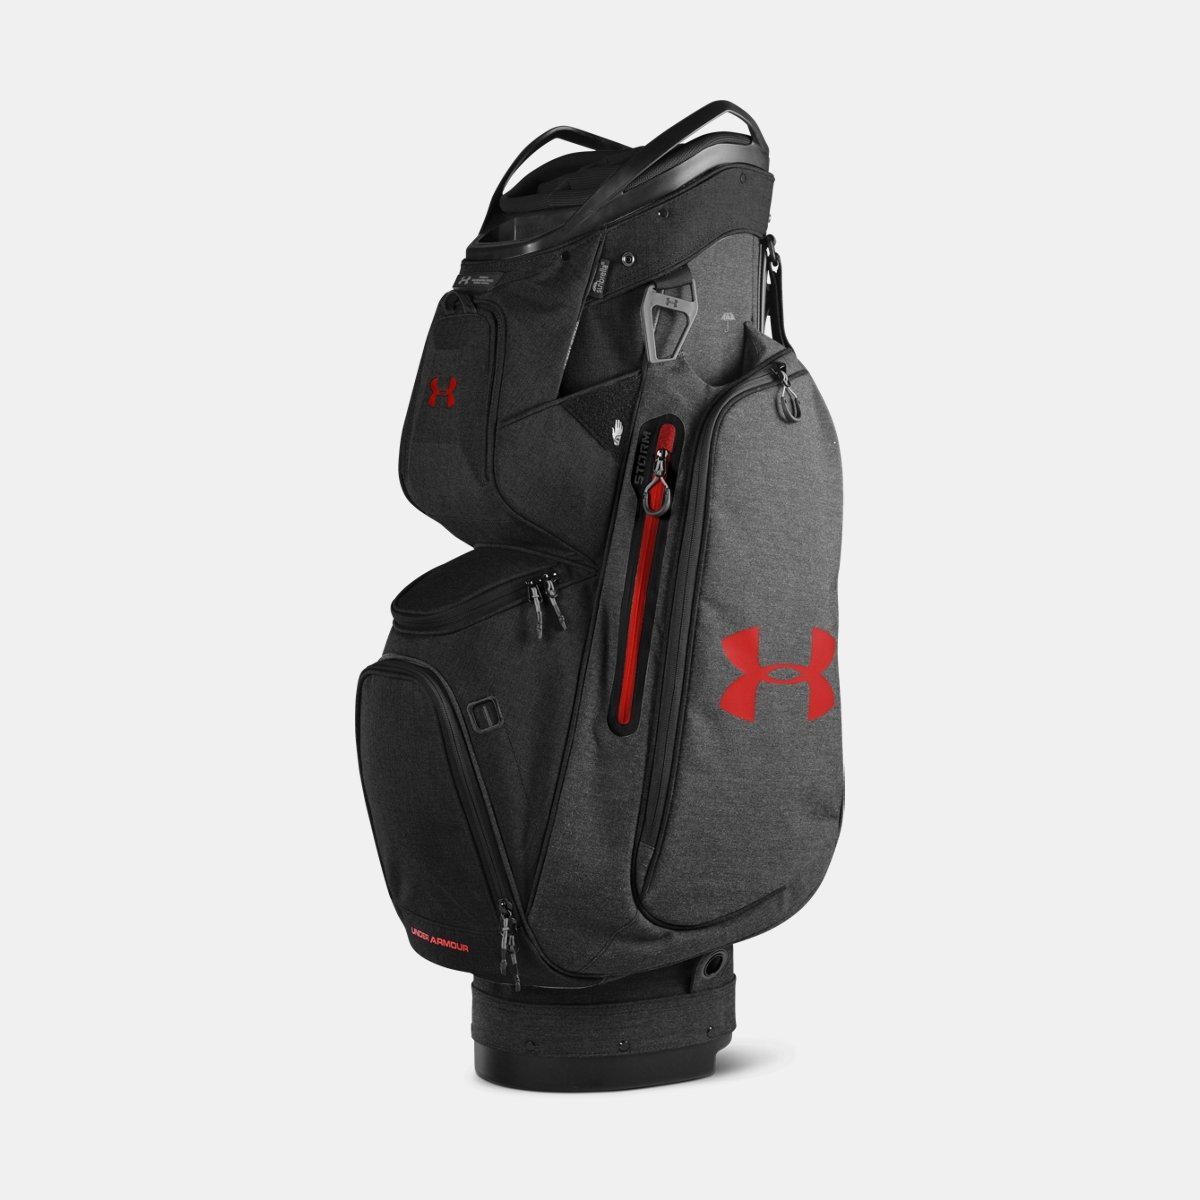 [UNDER ARMOUR] アンダーアーマー Men's UA Storm Armada Cart Bag Carbon Heather/Black [並行輸入品] B074Z2S8XG